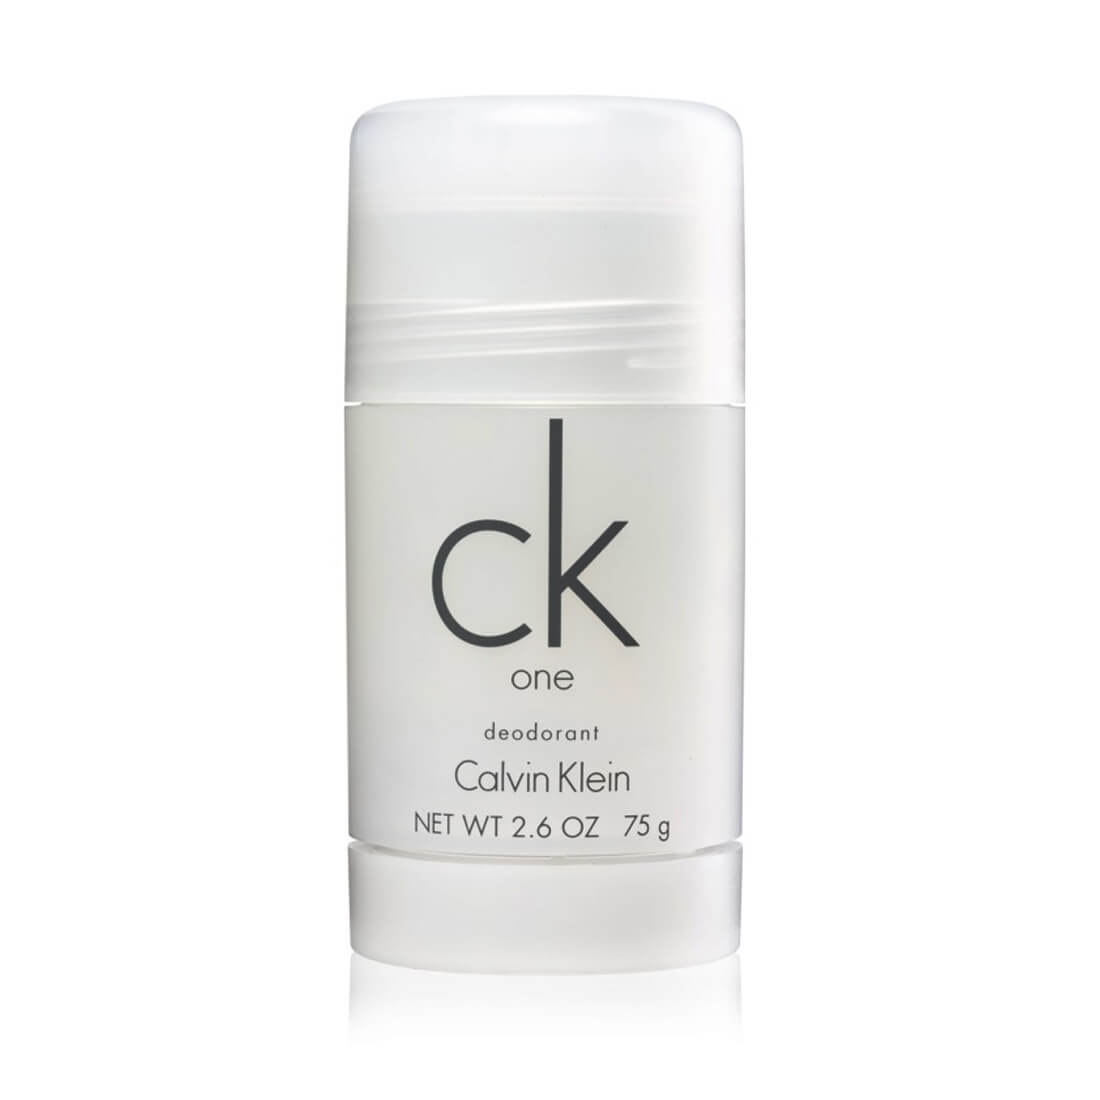 Calvin Klein CK One Deodorant Stick For Unisex - 75g